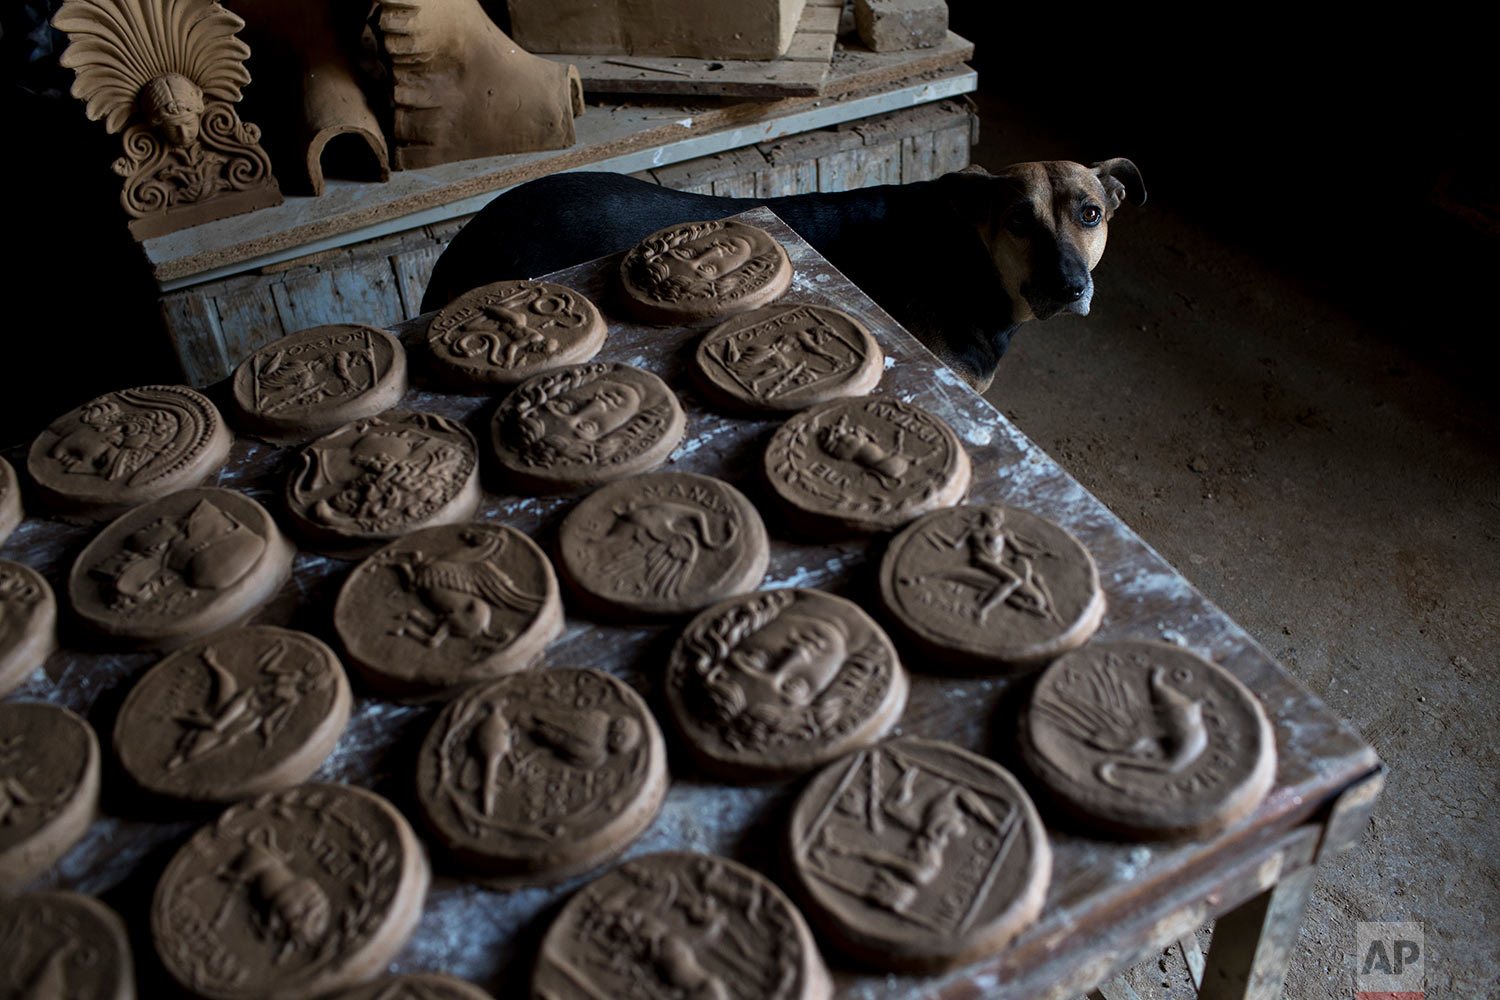 In this Friday, Oct. 13, 2017 photo a dog stands next to ceramic medallions based on ancient Greek coins in Haralambos Goumas' sculpture and ceramic workshop, in the Egaleo suburb of Athens. (AP Photo/Petros Giannakouris)